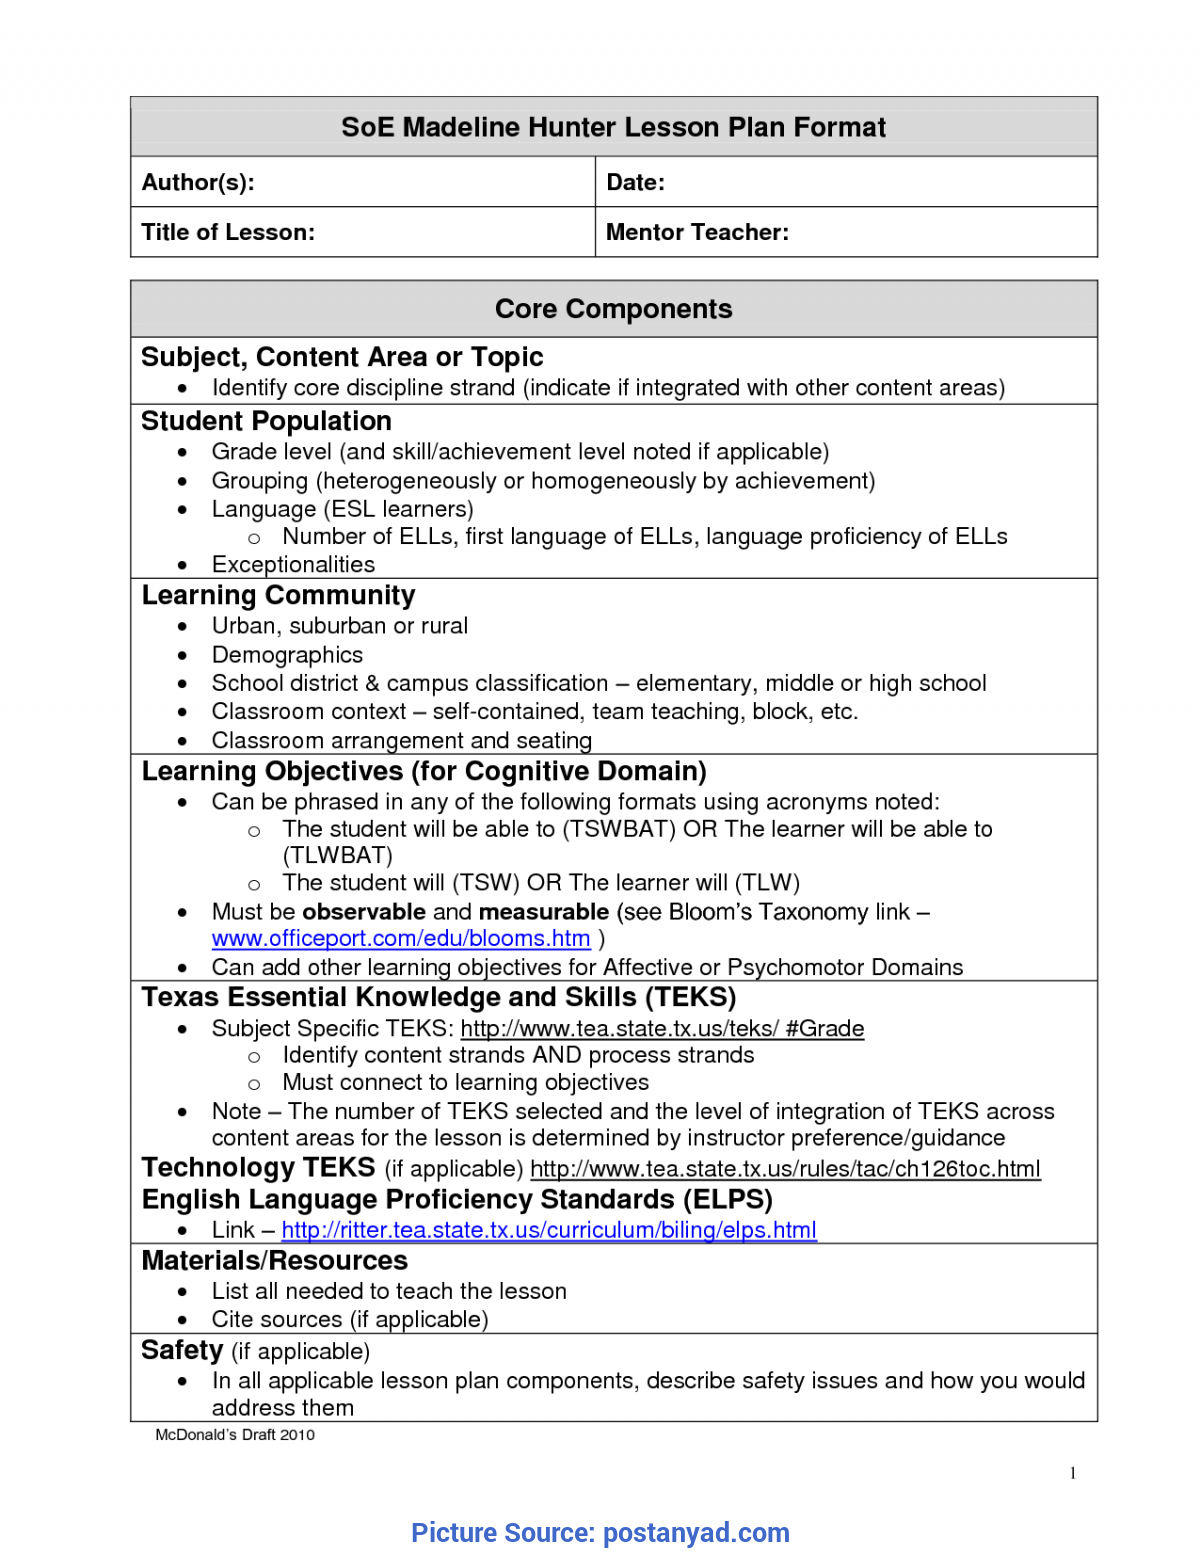 Best Madeline Hunter Lesson Plan Components Madeline Hunter Throughout Madeline Hunter Lesson Plan Template Word